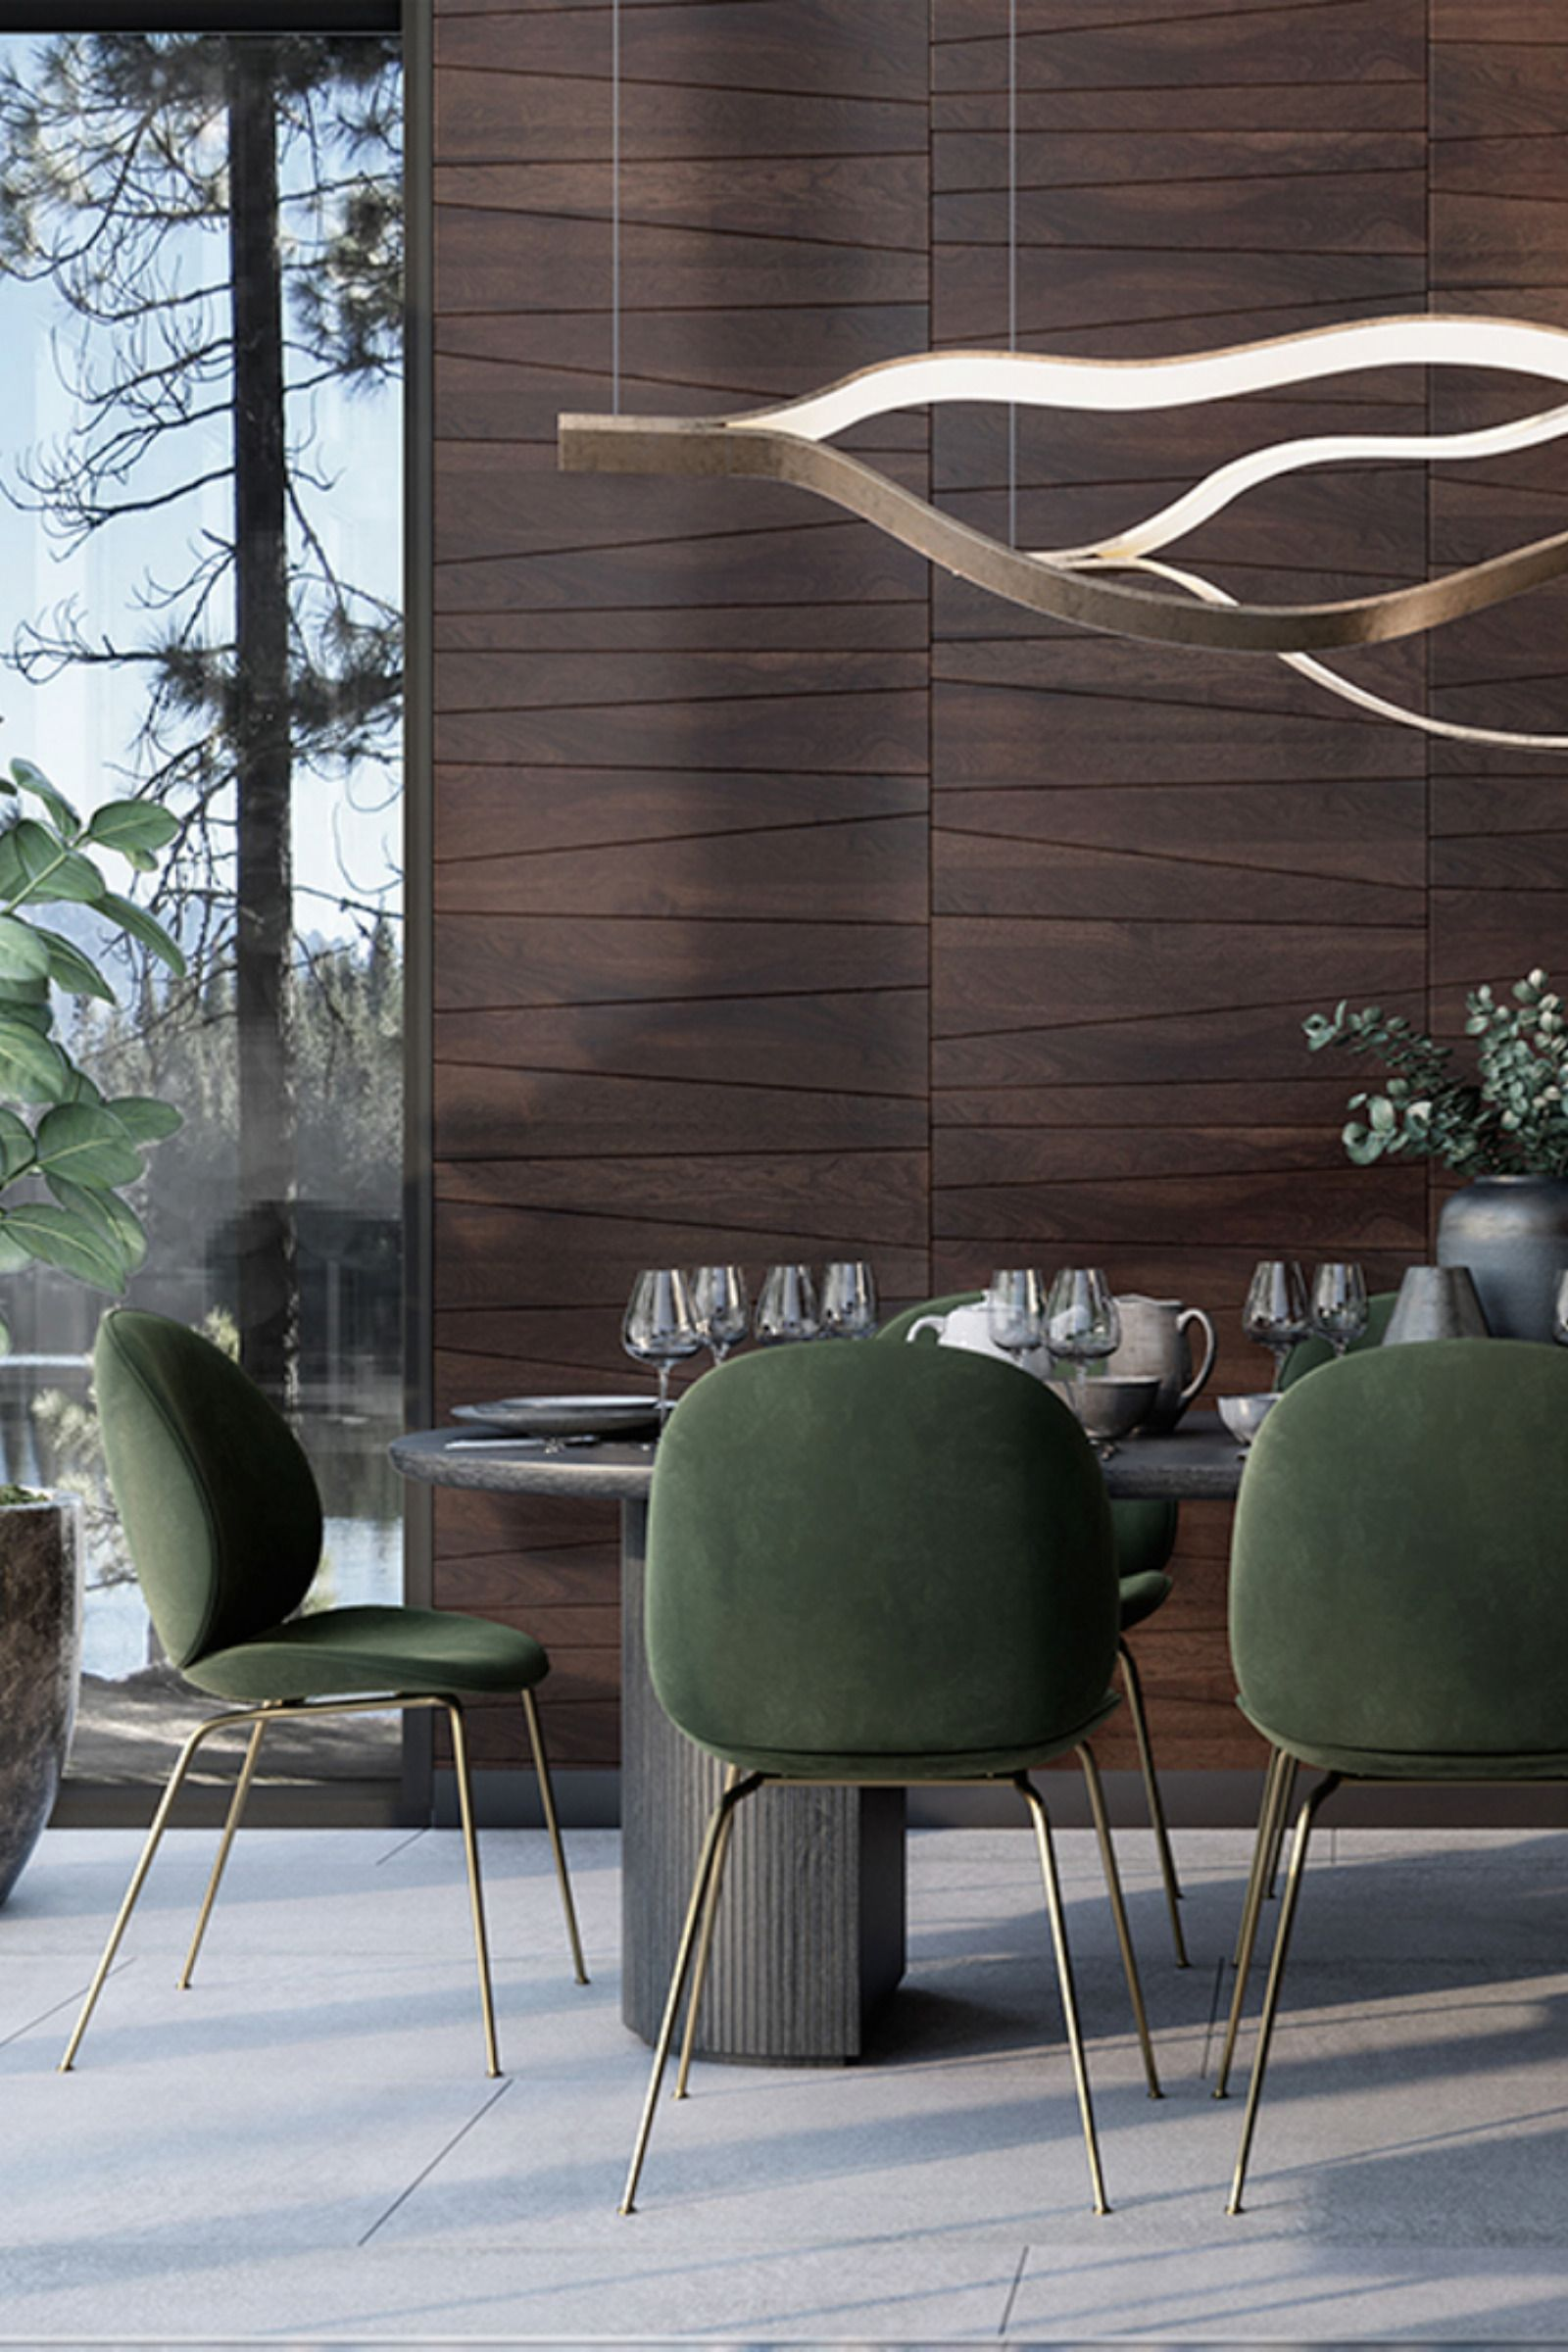 Living Room Walls Wood Panels: Wall Panels Trapezium Made Of Wood In The Living Room